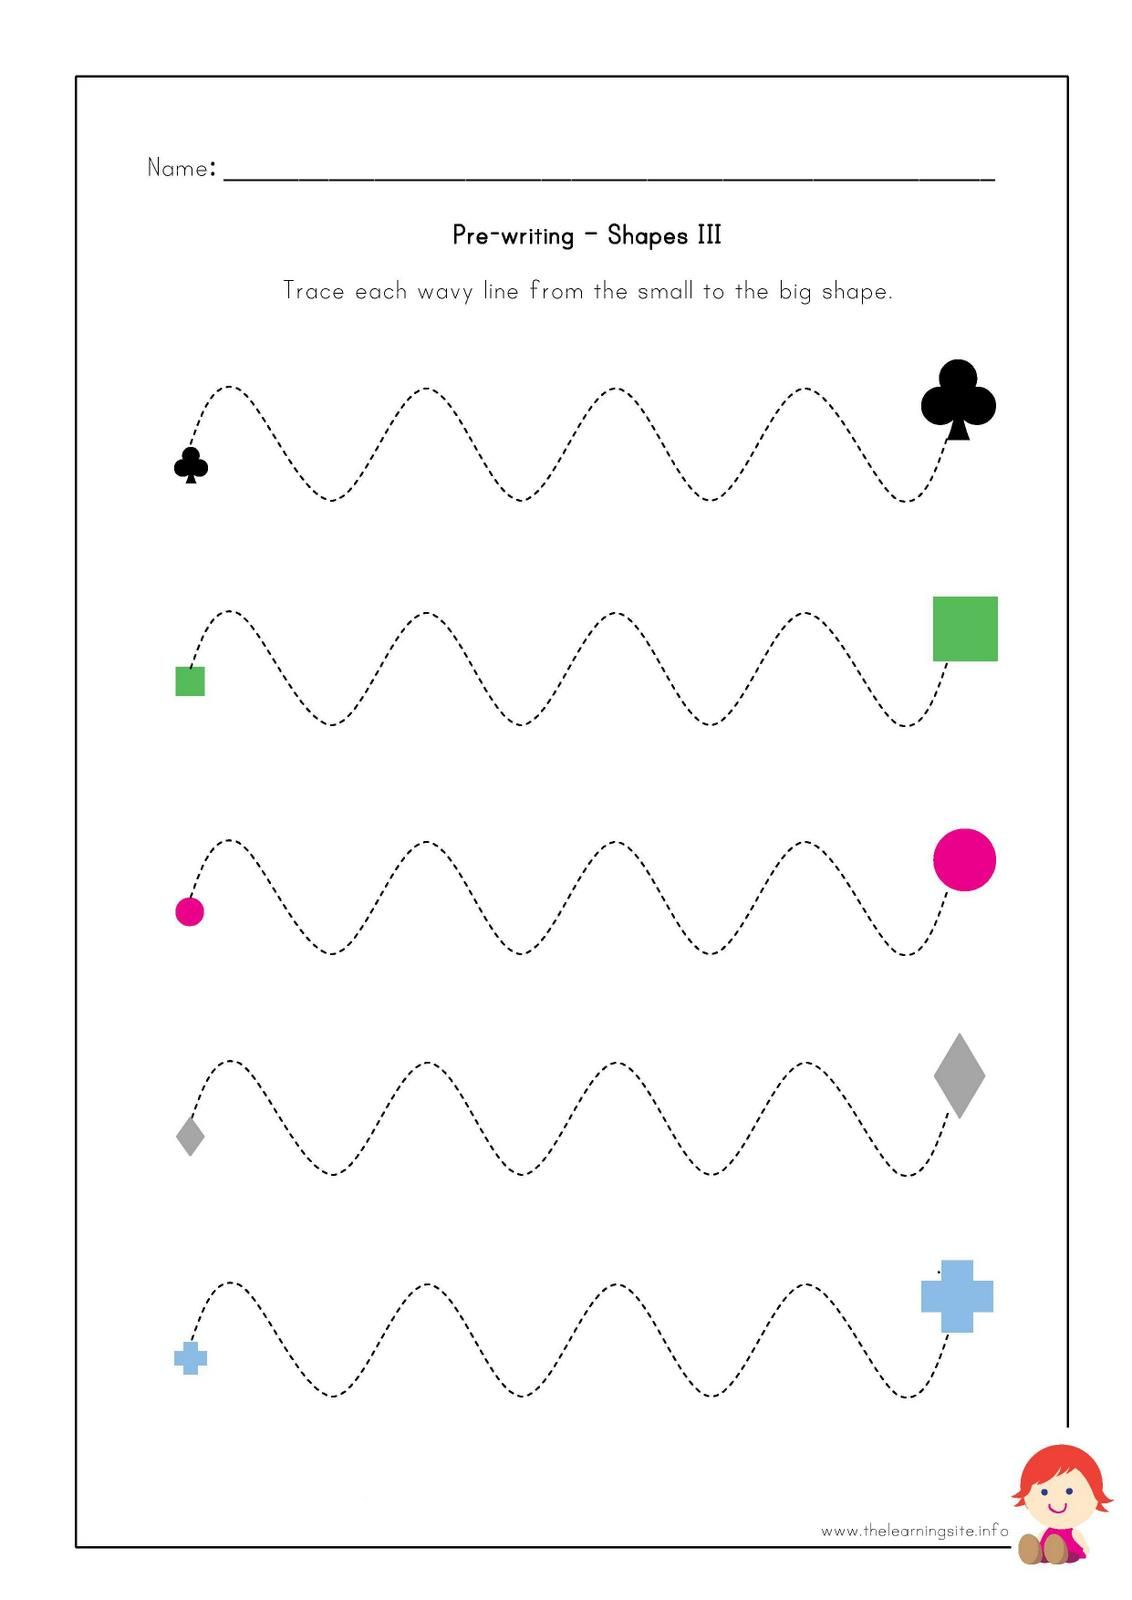 Worksheet Pattern Writing Worksheets 1000 images about pre writing skills on pinterest preschool worksheets and tracing letters